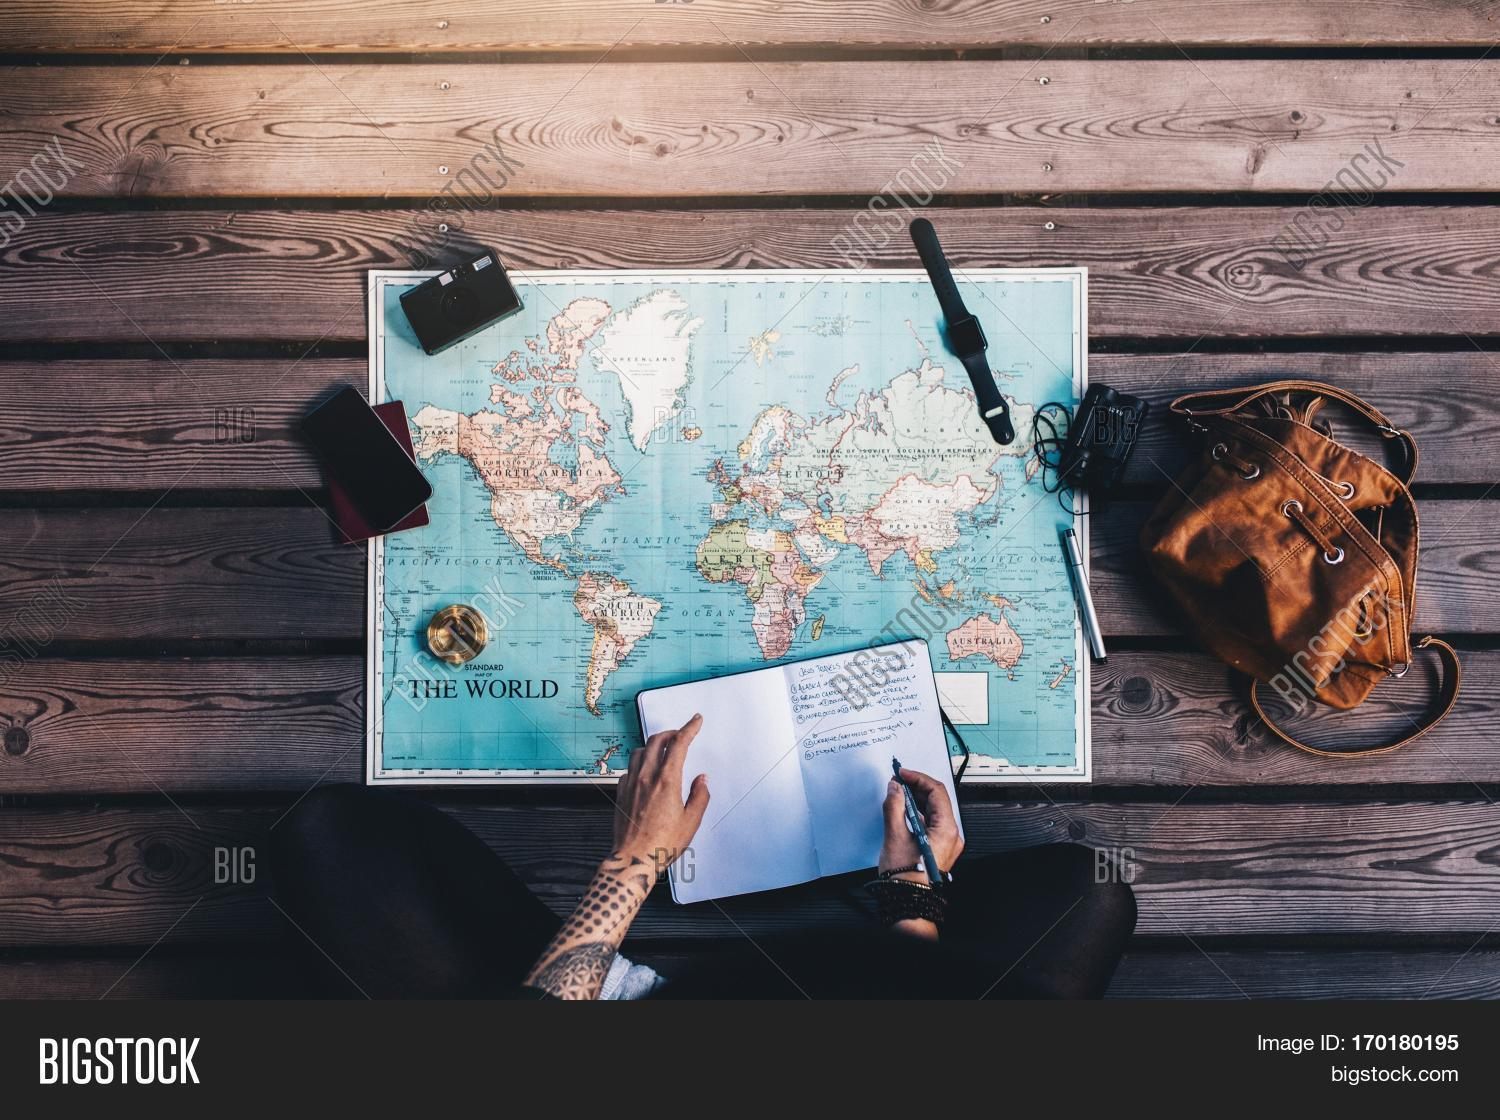 Imagen y foto young woman making notes diary bigstock young woman making notes in diary looking at the world map with travel accessories around gumiabroncs Gallery